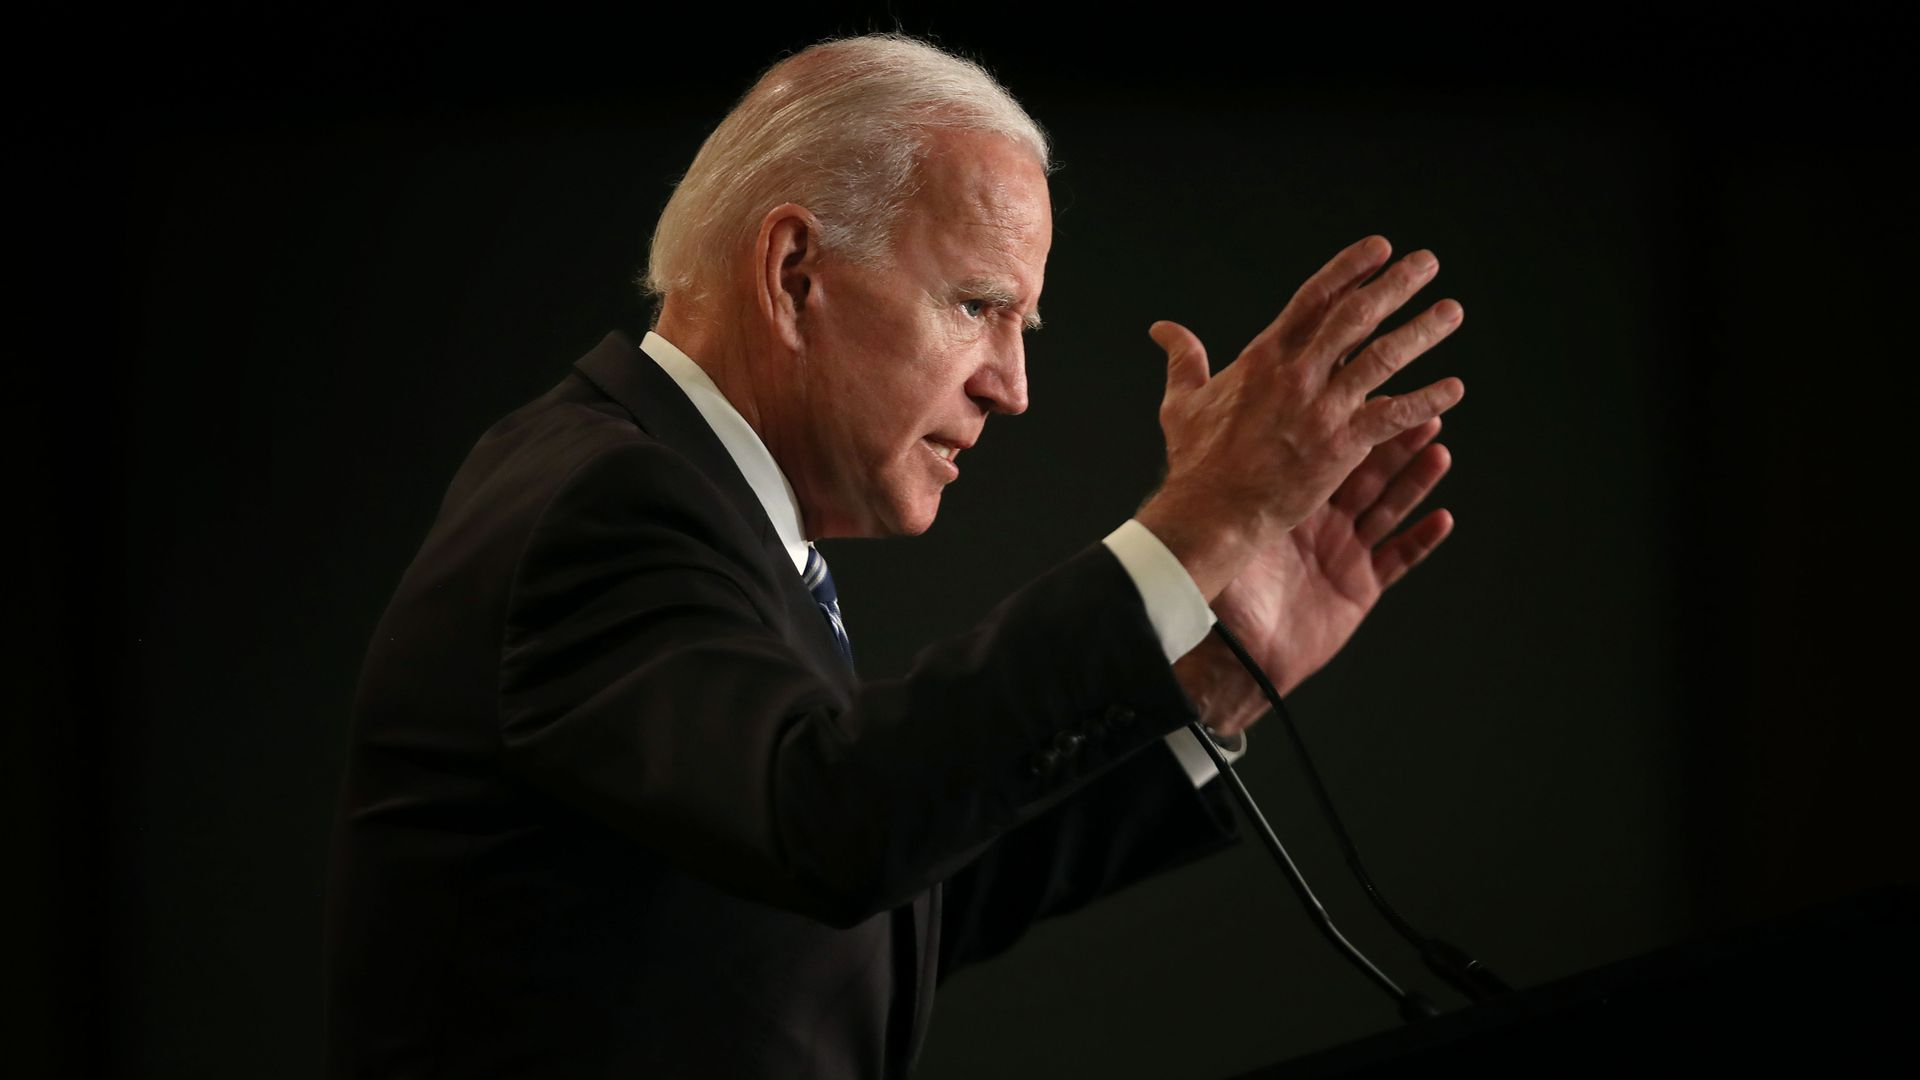 In this image, Biden stands with his hands outstretched.